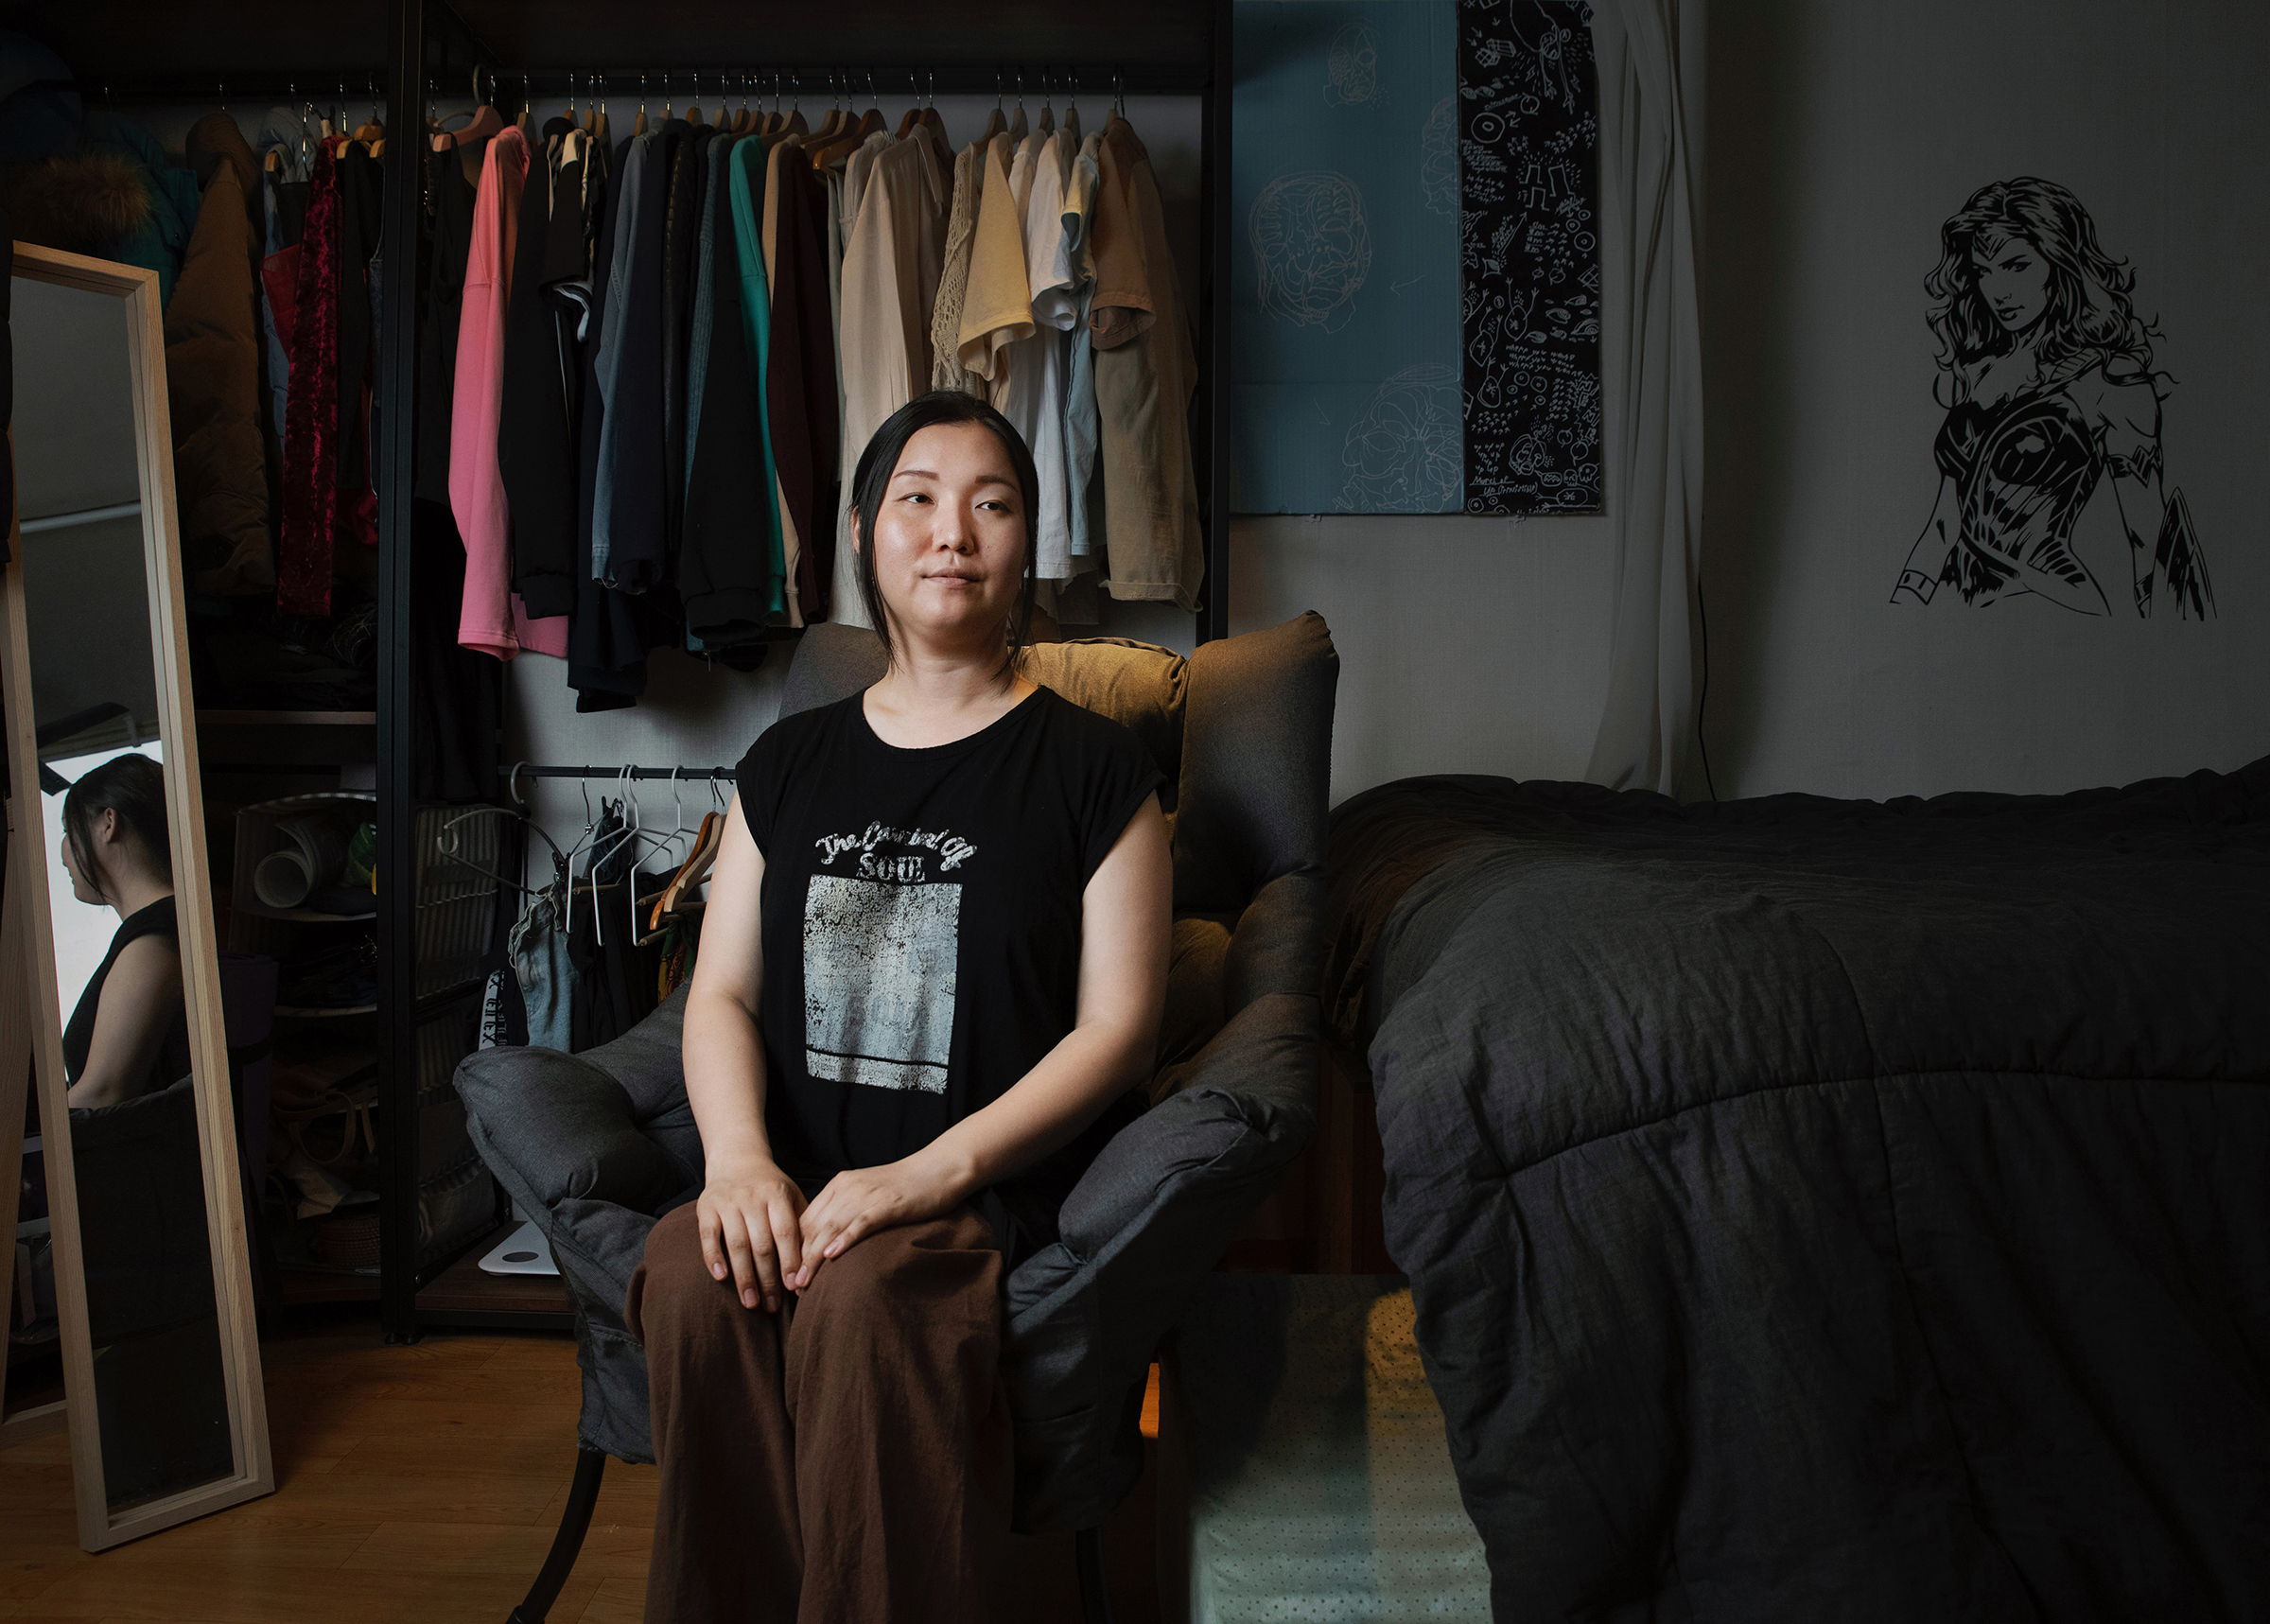 Park Edhi poses for a portrait at her home in Itaewon, Seoul, on June 21. Park moved into this apartment in January 2020, just before the COVID-19 pandemic. Transphobia was also running high.  Hatred was just pouring out. It was an incredibly difficult time,  says Park. Referring to the high-profile dismissal and death of Sgt. Byun Hee-soo, as well as the case of a transgender student who faced backlash for getting acceptance to a women's university, Park says:  Even with gender confirmation surgery, not being able to go to school? Or a transwoman soldier who wanted to serve but couldn't ... What are we supposed to do?  Park says the lack of policies to protect basic rights has left her in a state of hopelessness.  I went to five funerals in two months. You know how, when you get wounded, you put medicine on it and the wound scabs over? I'm in that scab period. And this home is my safe space.